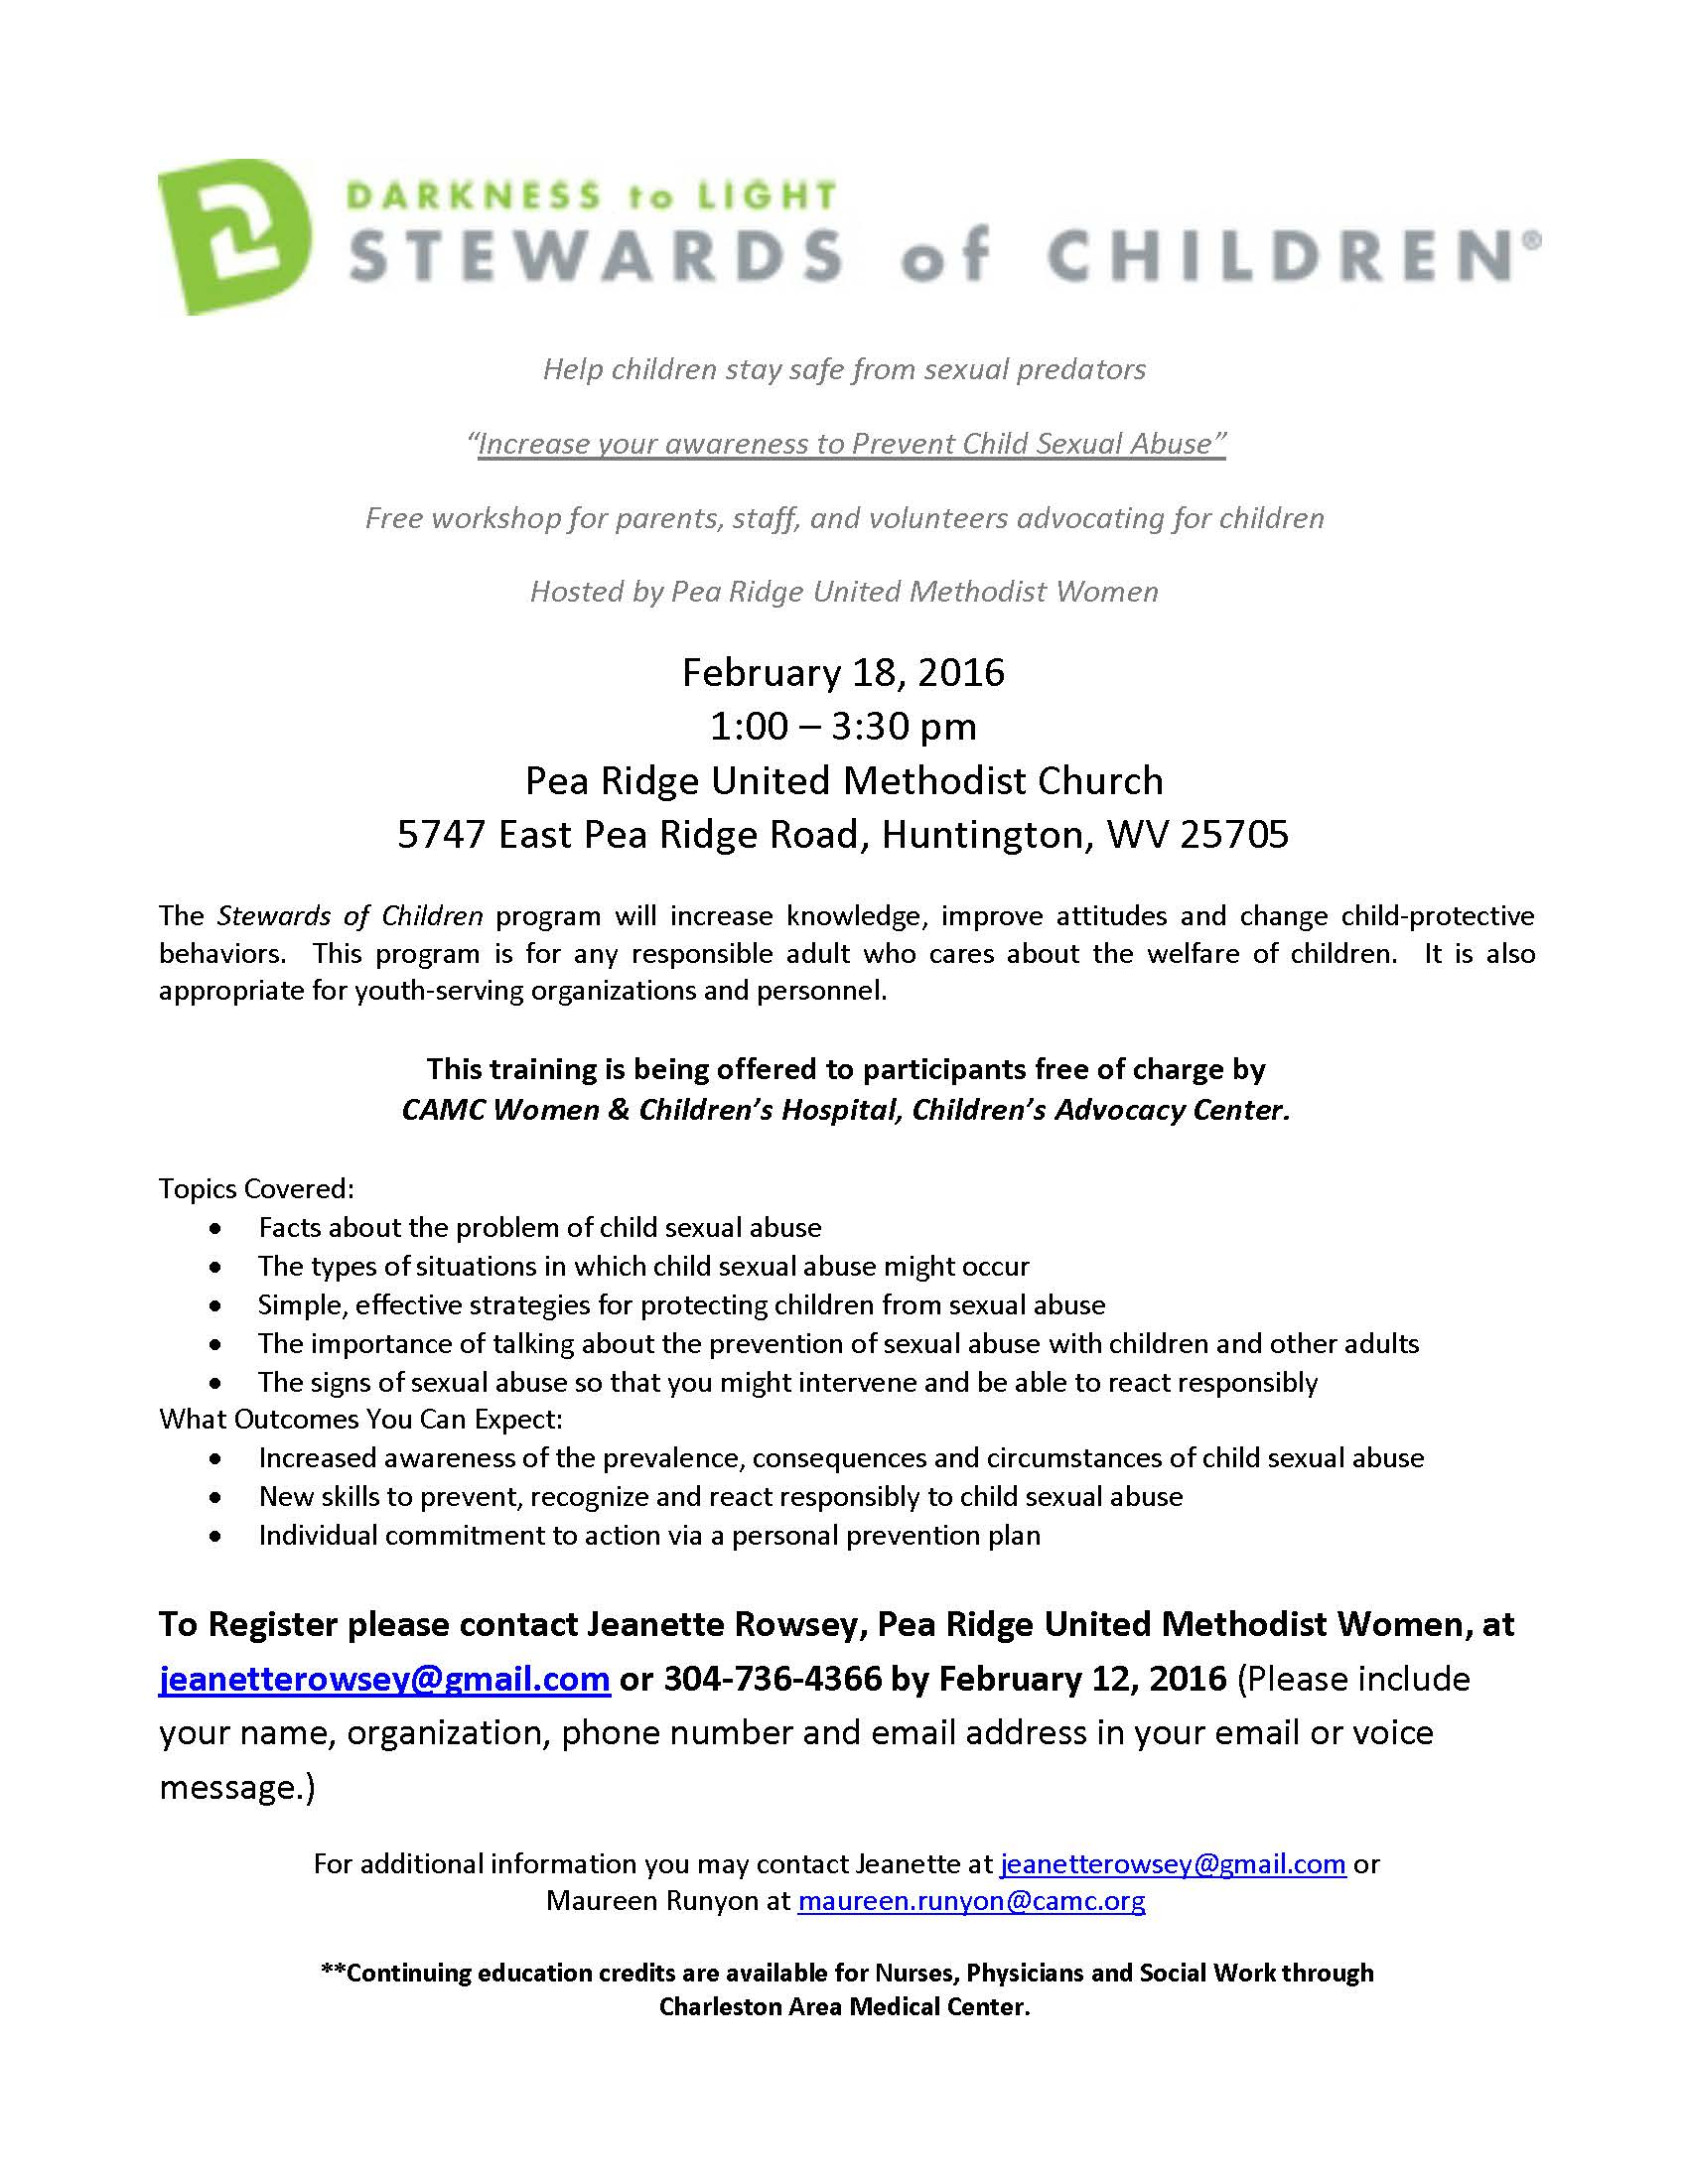 Stewards of Children 2-18-16 flyer jpeg